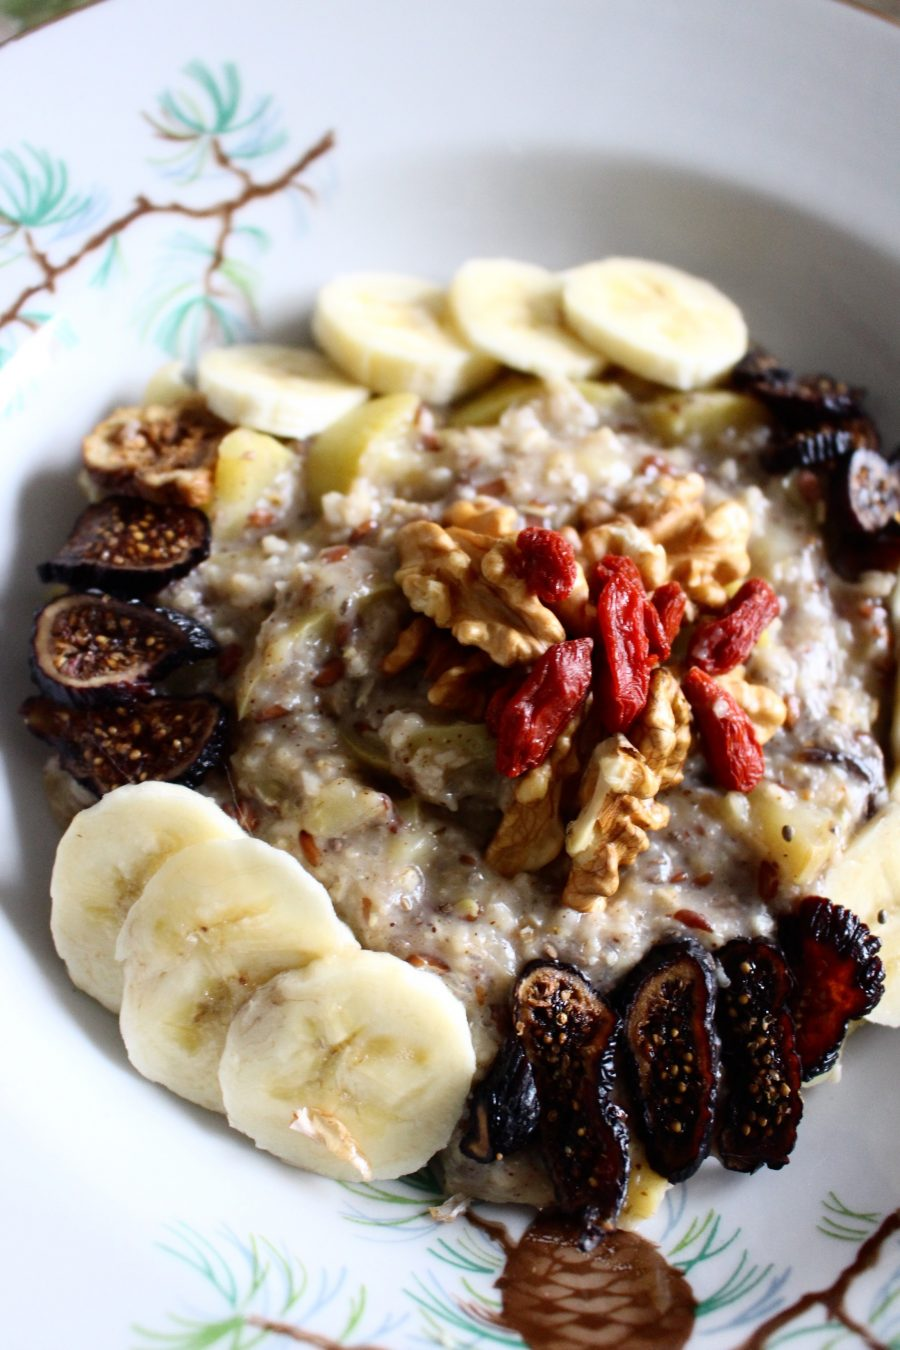 warm Apple-Banana Porridge